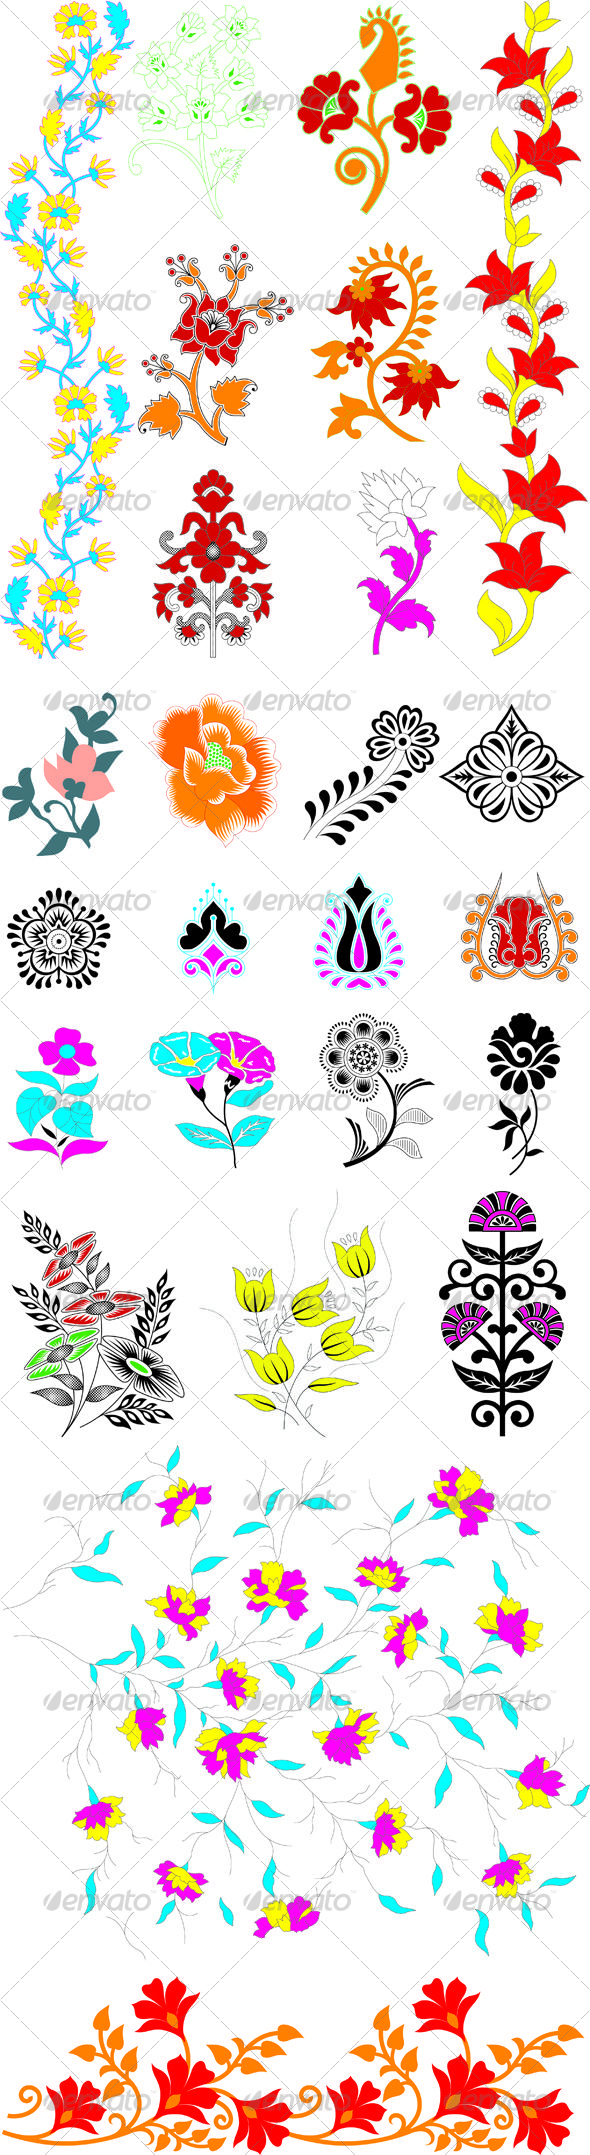 Realistic Graphic DOWNLOAD (.ai, .psd) :: http://jquery-css.de/pinterest-itmid-1000078364i.html ... Vector Flower Pack 01 ... <p>25 Vector Flowers.</p> black, blue, clean, creative, flower, green, home, man, megenta, orange, red, web, white, woman, yellow  ... Realistic Photo Graphic Print Obejct Business Web Elements Illustration Design Templates ... DOWNLOAD :: http://jquery-css.de/pinterest-itmid-1000078364i.html